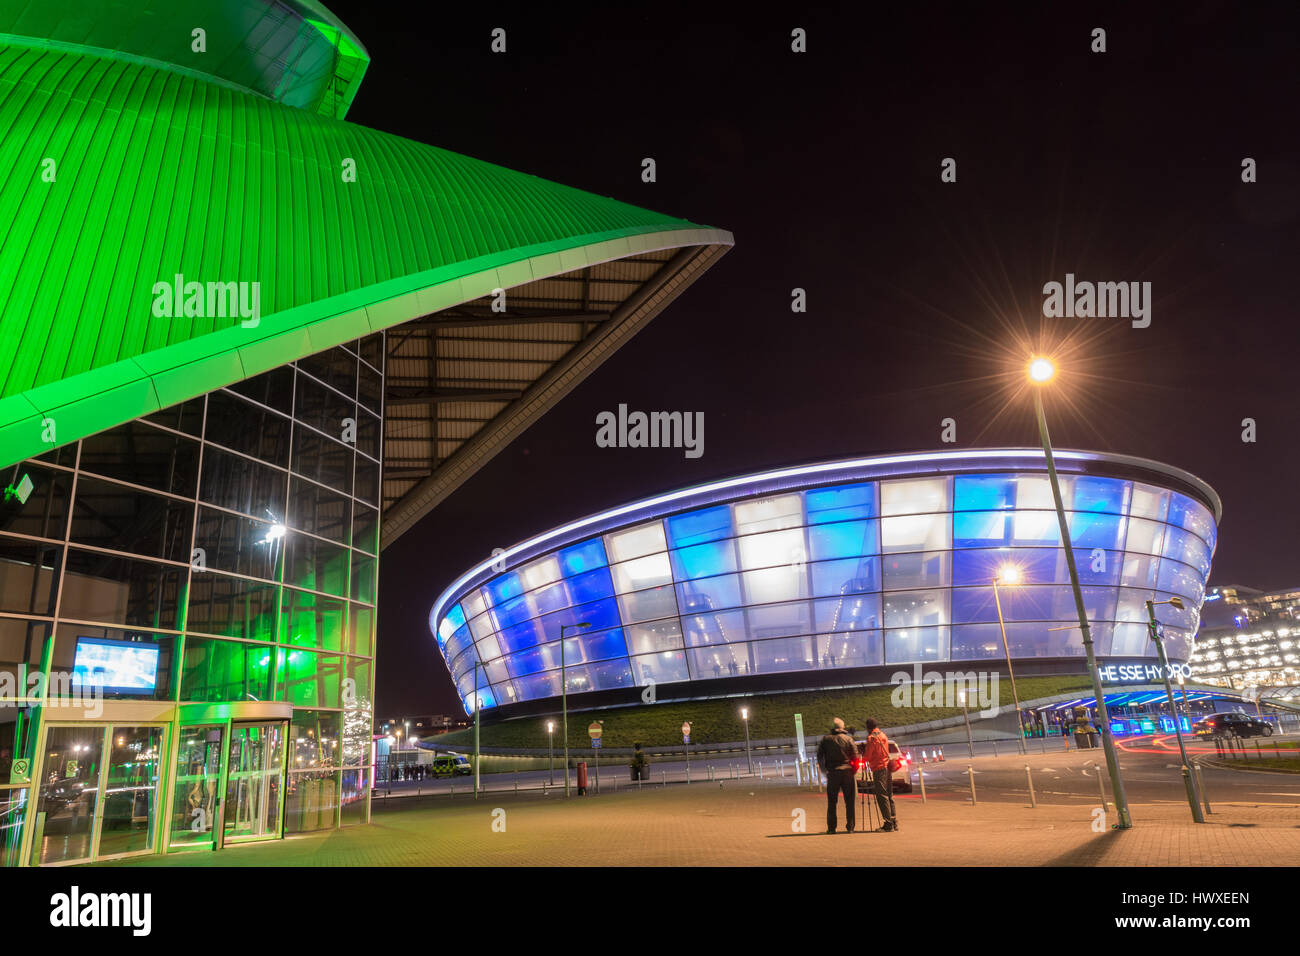 The Scottish Event Campus (SEC) Glasgow, Scotland - The SSE Hydro and SEC Armadillo at night - Stock Image